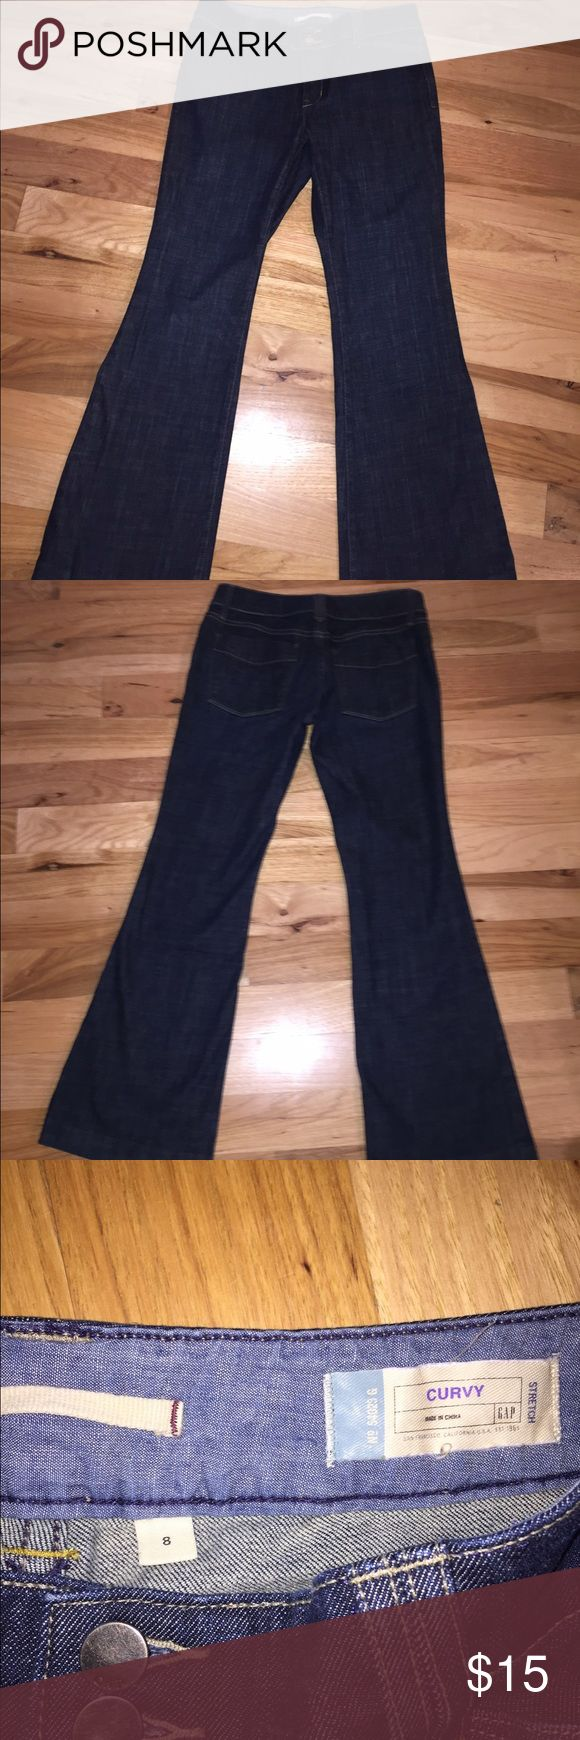 """Gap Jeans Gap Curvy Jeans practically new in great shape and very flattering. 30"""" Inseam GAP Jeans Flare & Wide Leg"""